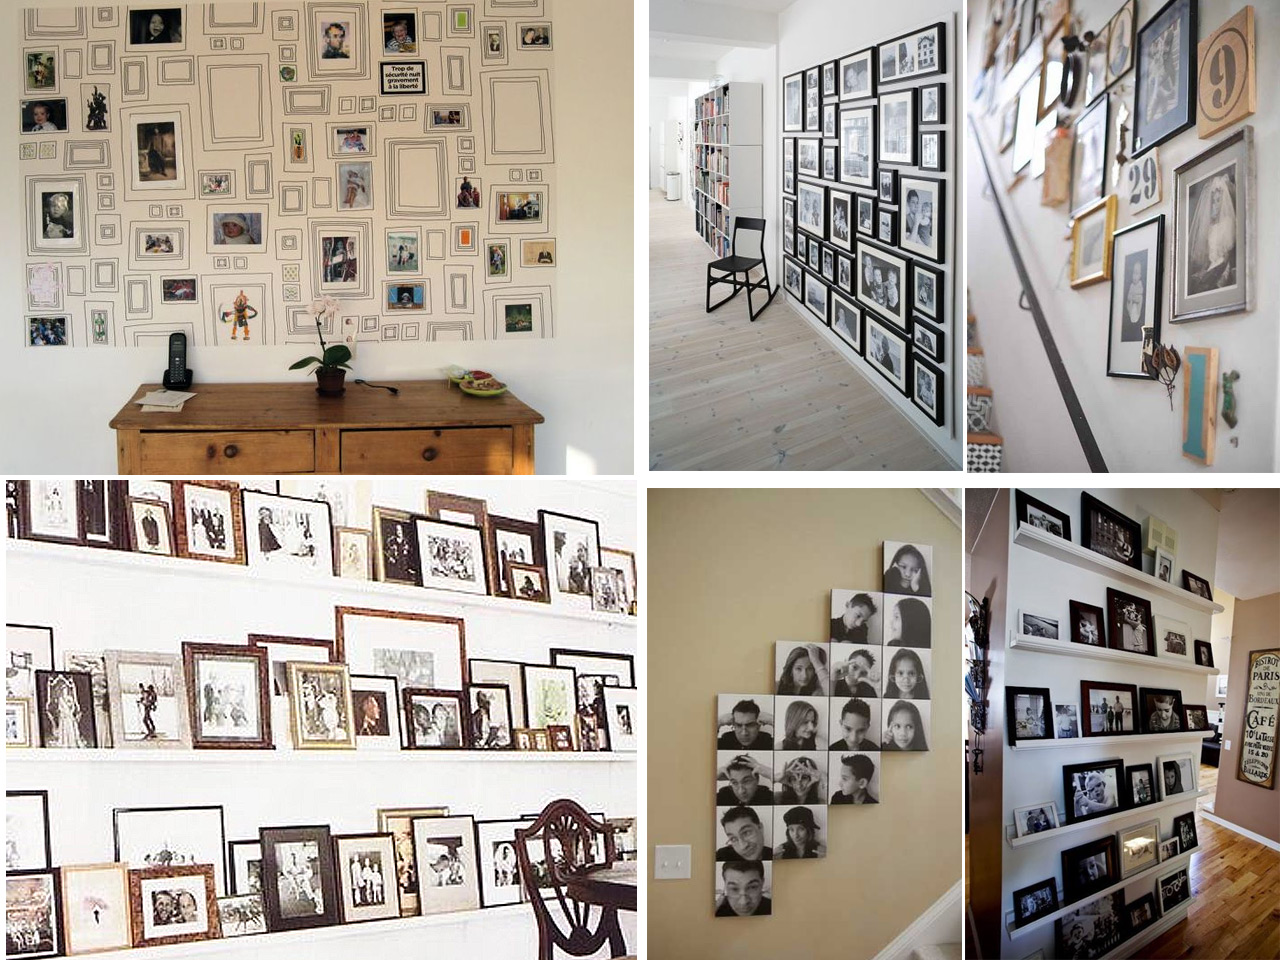 60 brillantes ideas para decorar con fotos familiares - Ideas originales para decorar paredes ...